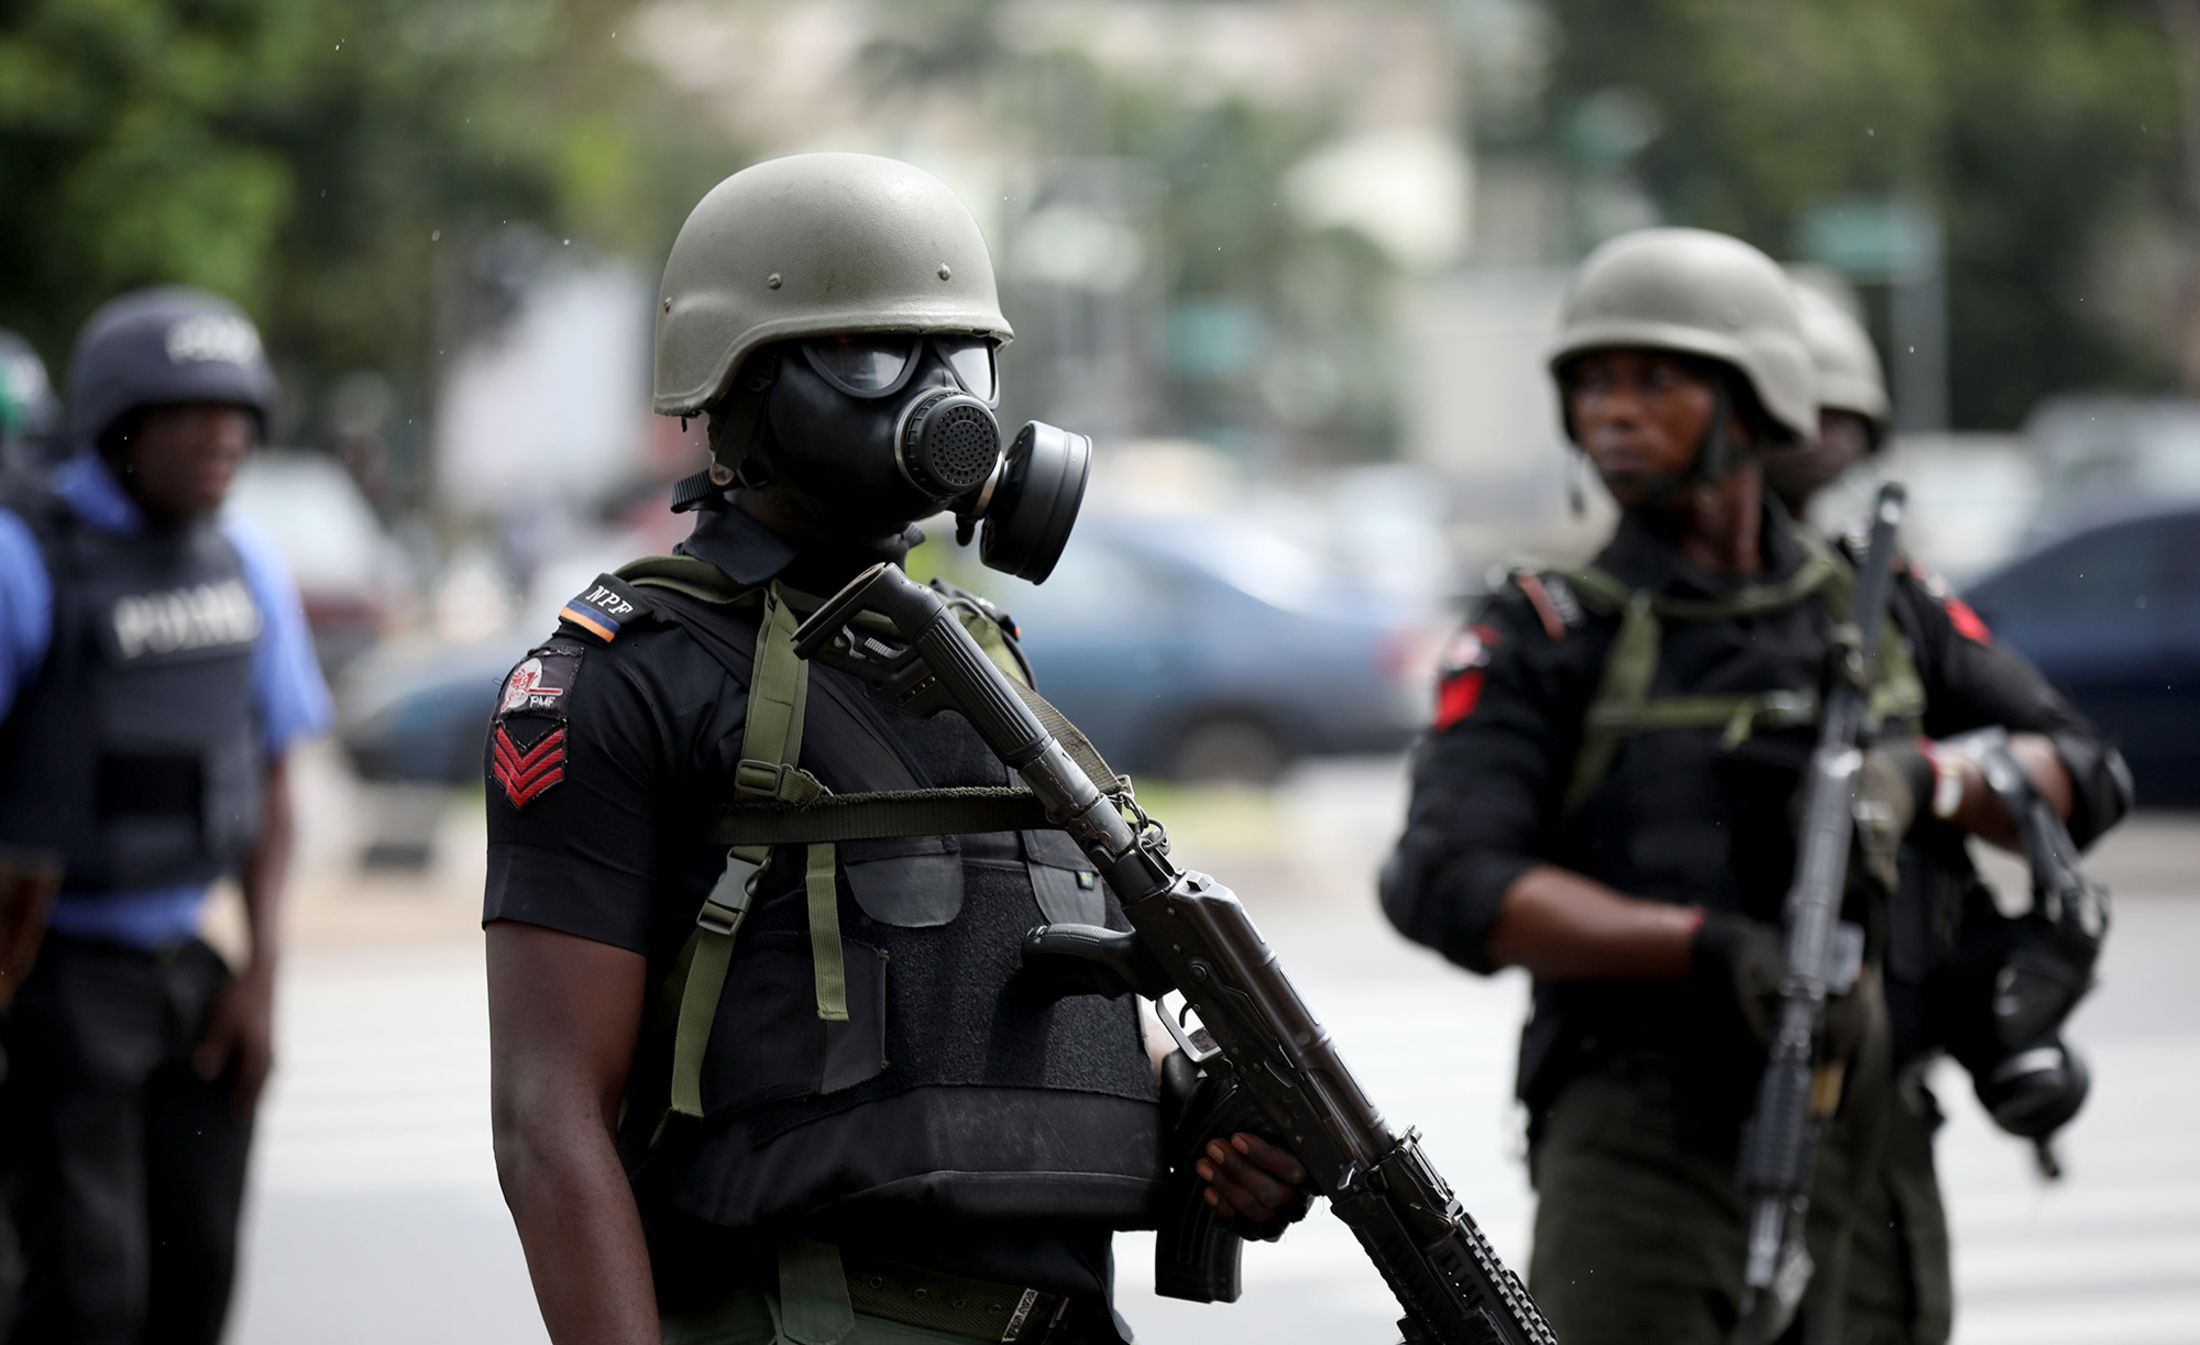 Riot policemen wearing masks stand in a street during aprotest in Abuja on July 23, 2019.